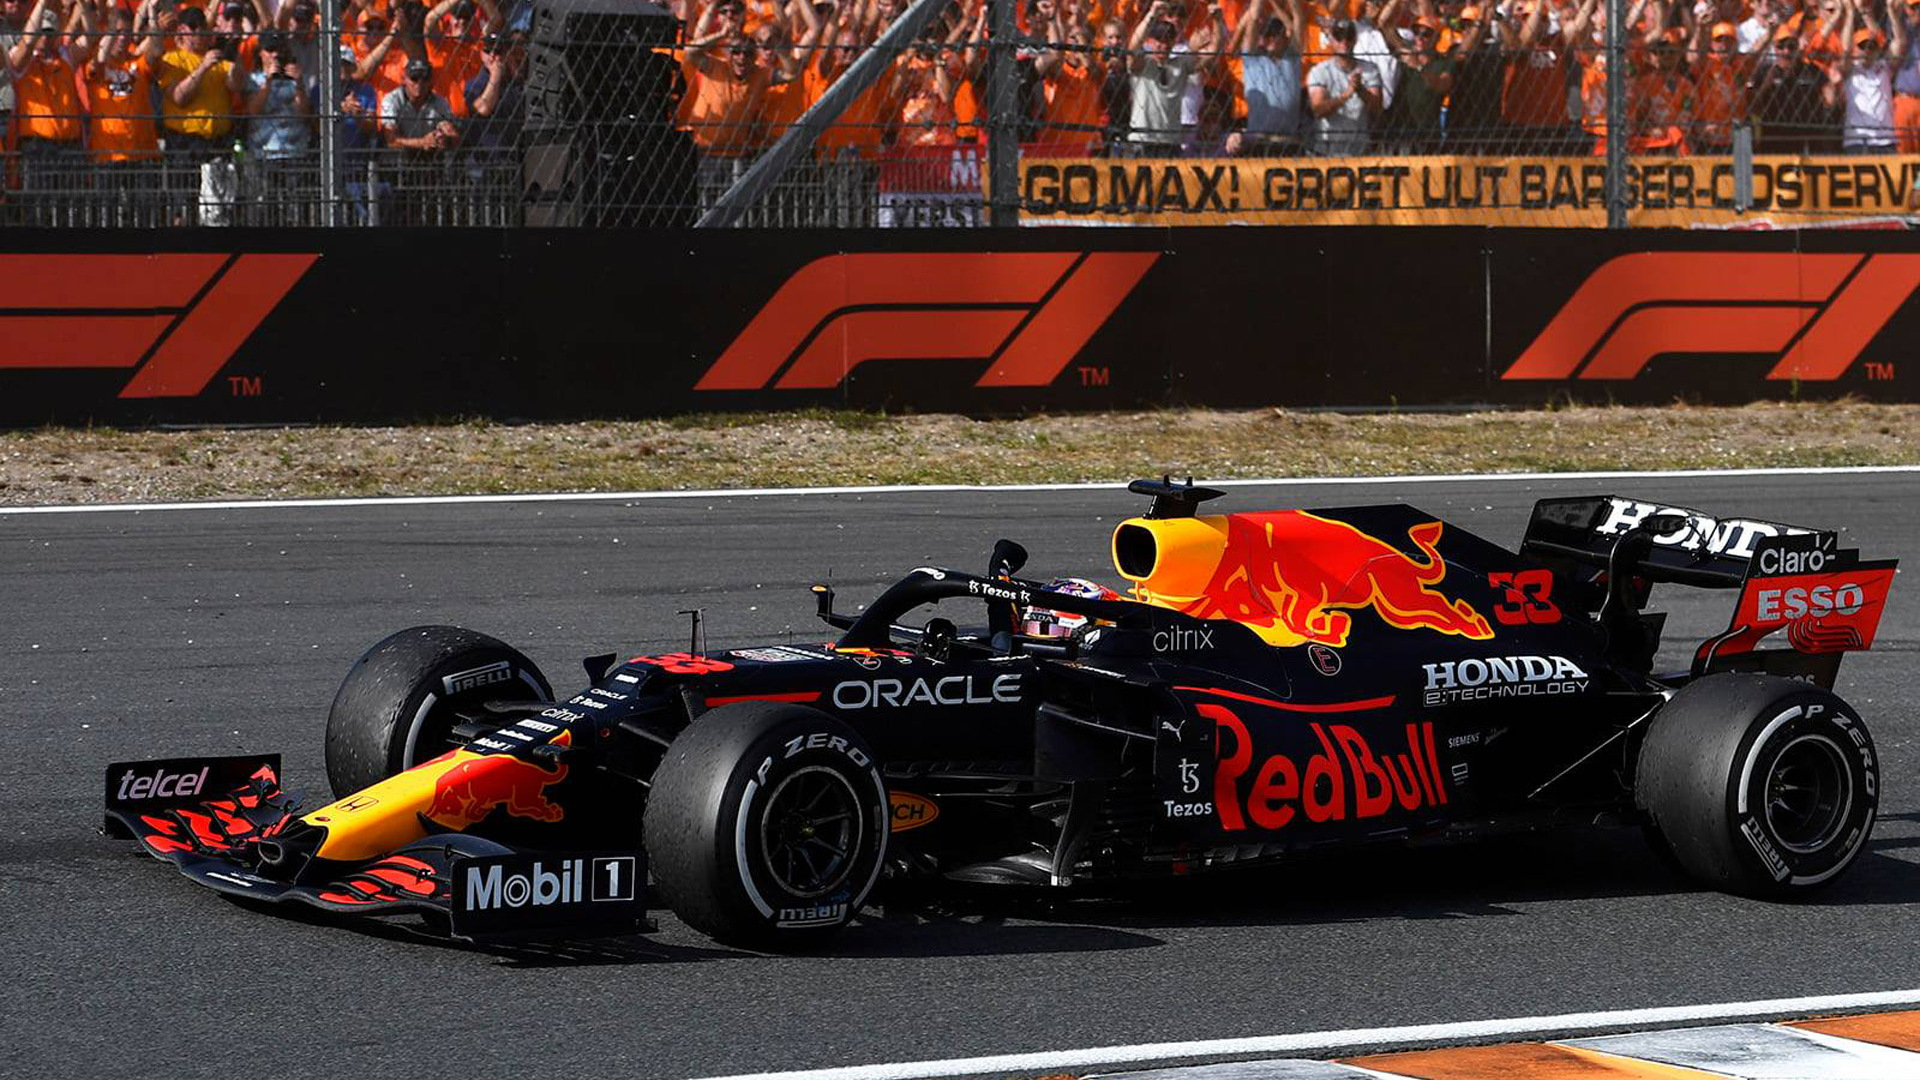 Red Bull Racing's Max Verstappen at the 2021 Formula One Dutch Grand Prix